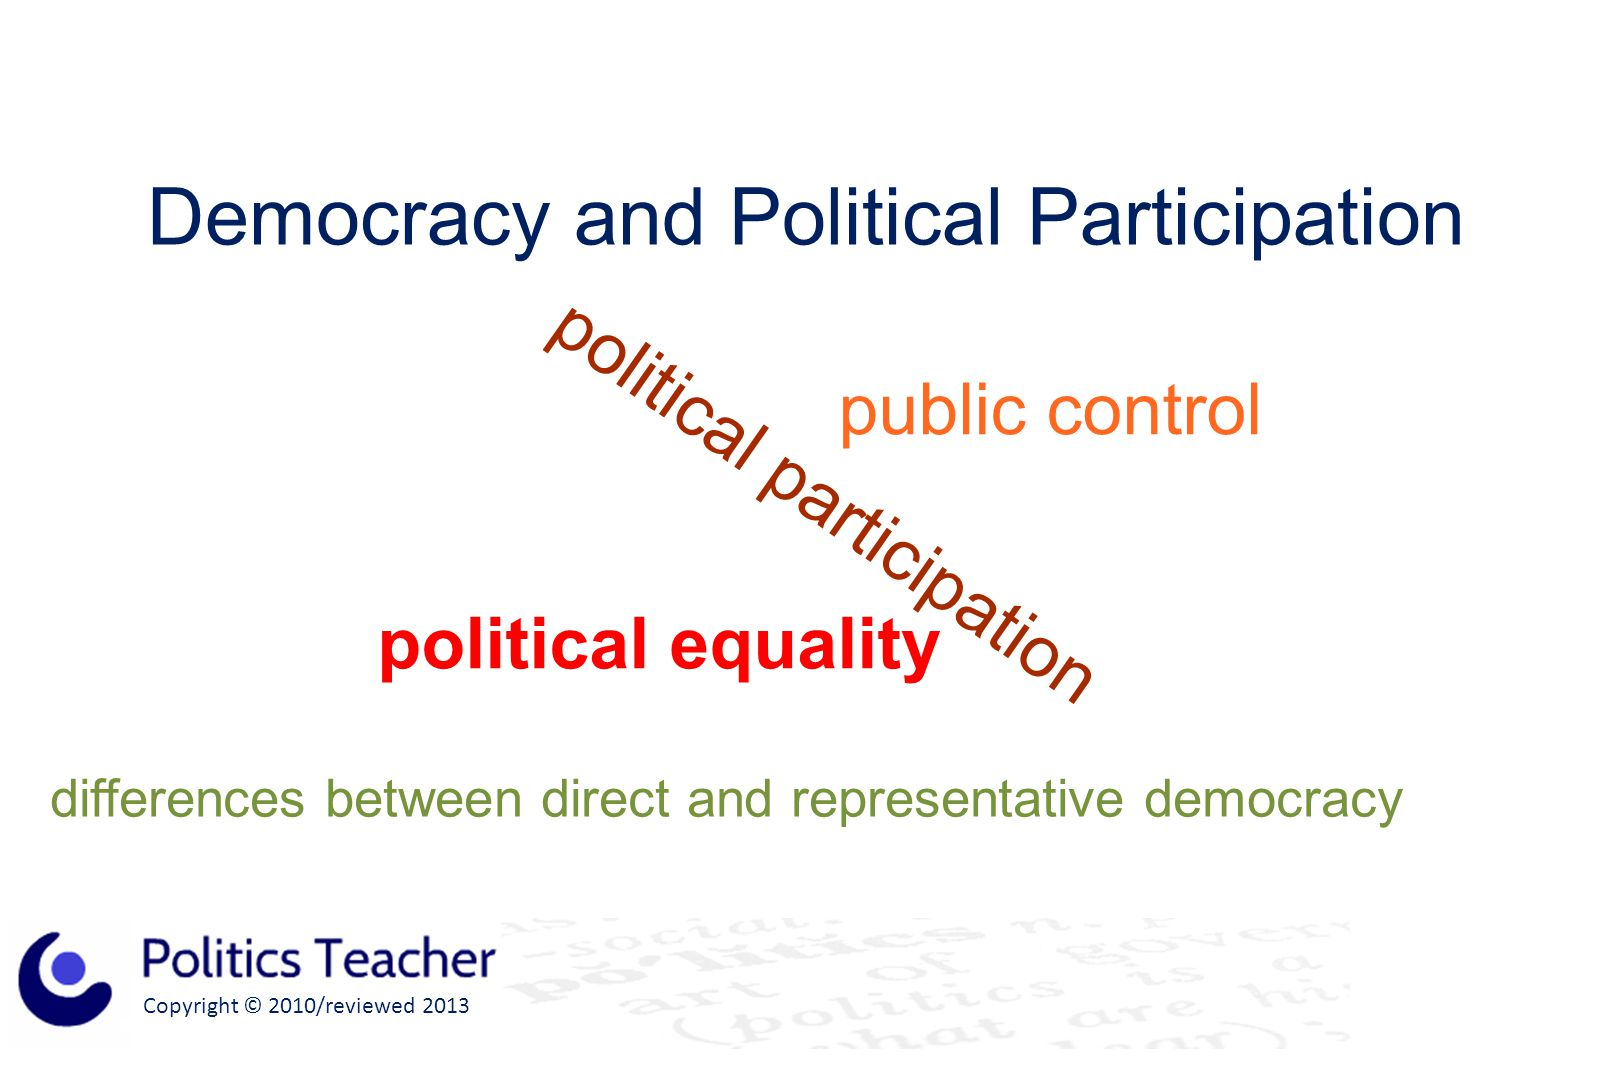 Copyright © 2010/reviewed 2013 Democracy and Political Participation political equality political participation public control differences between direct and representative democracy